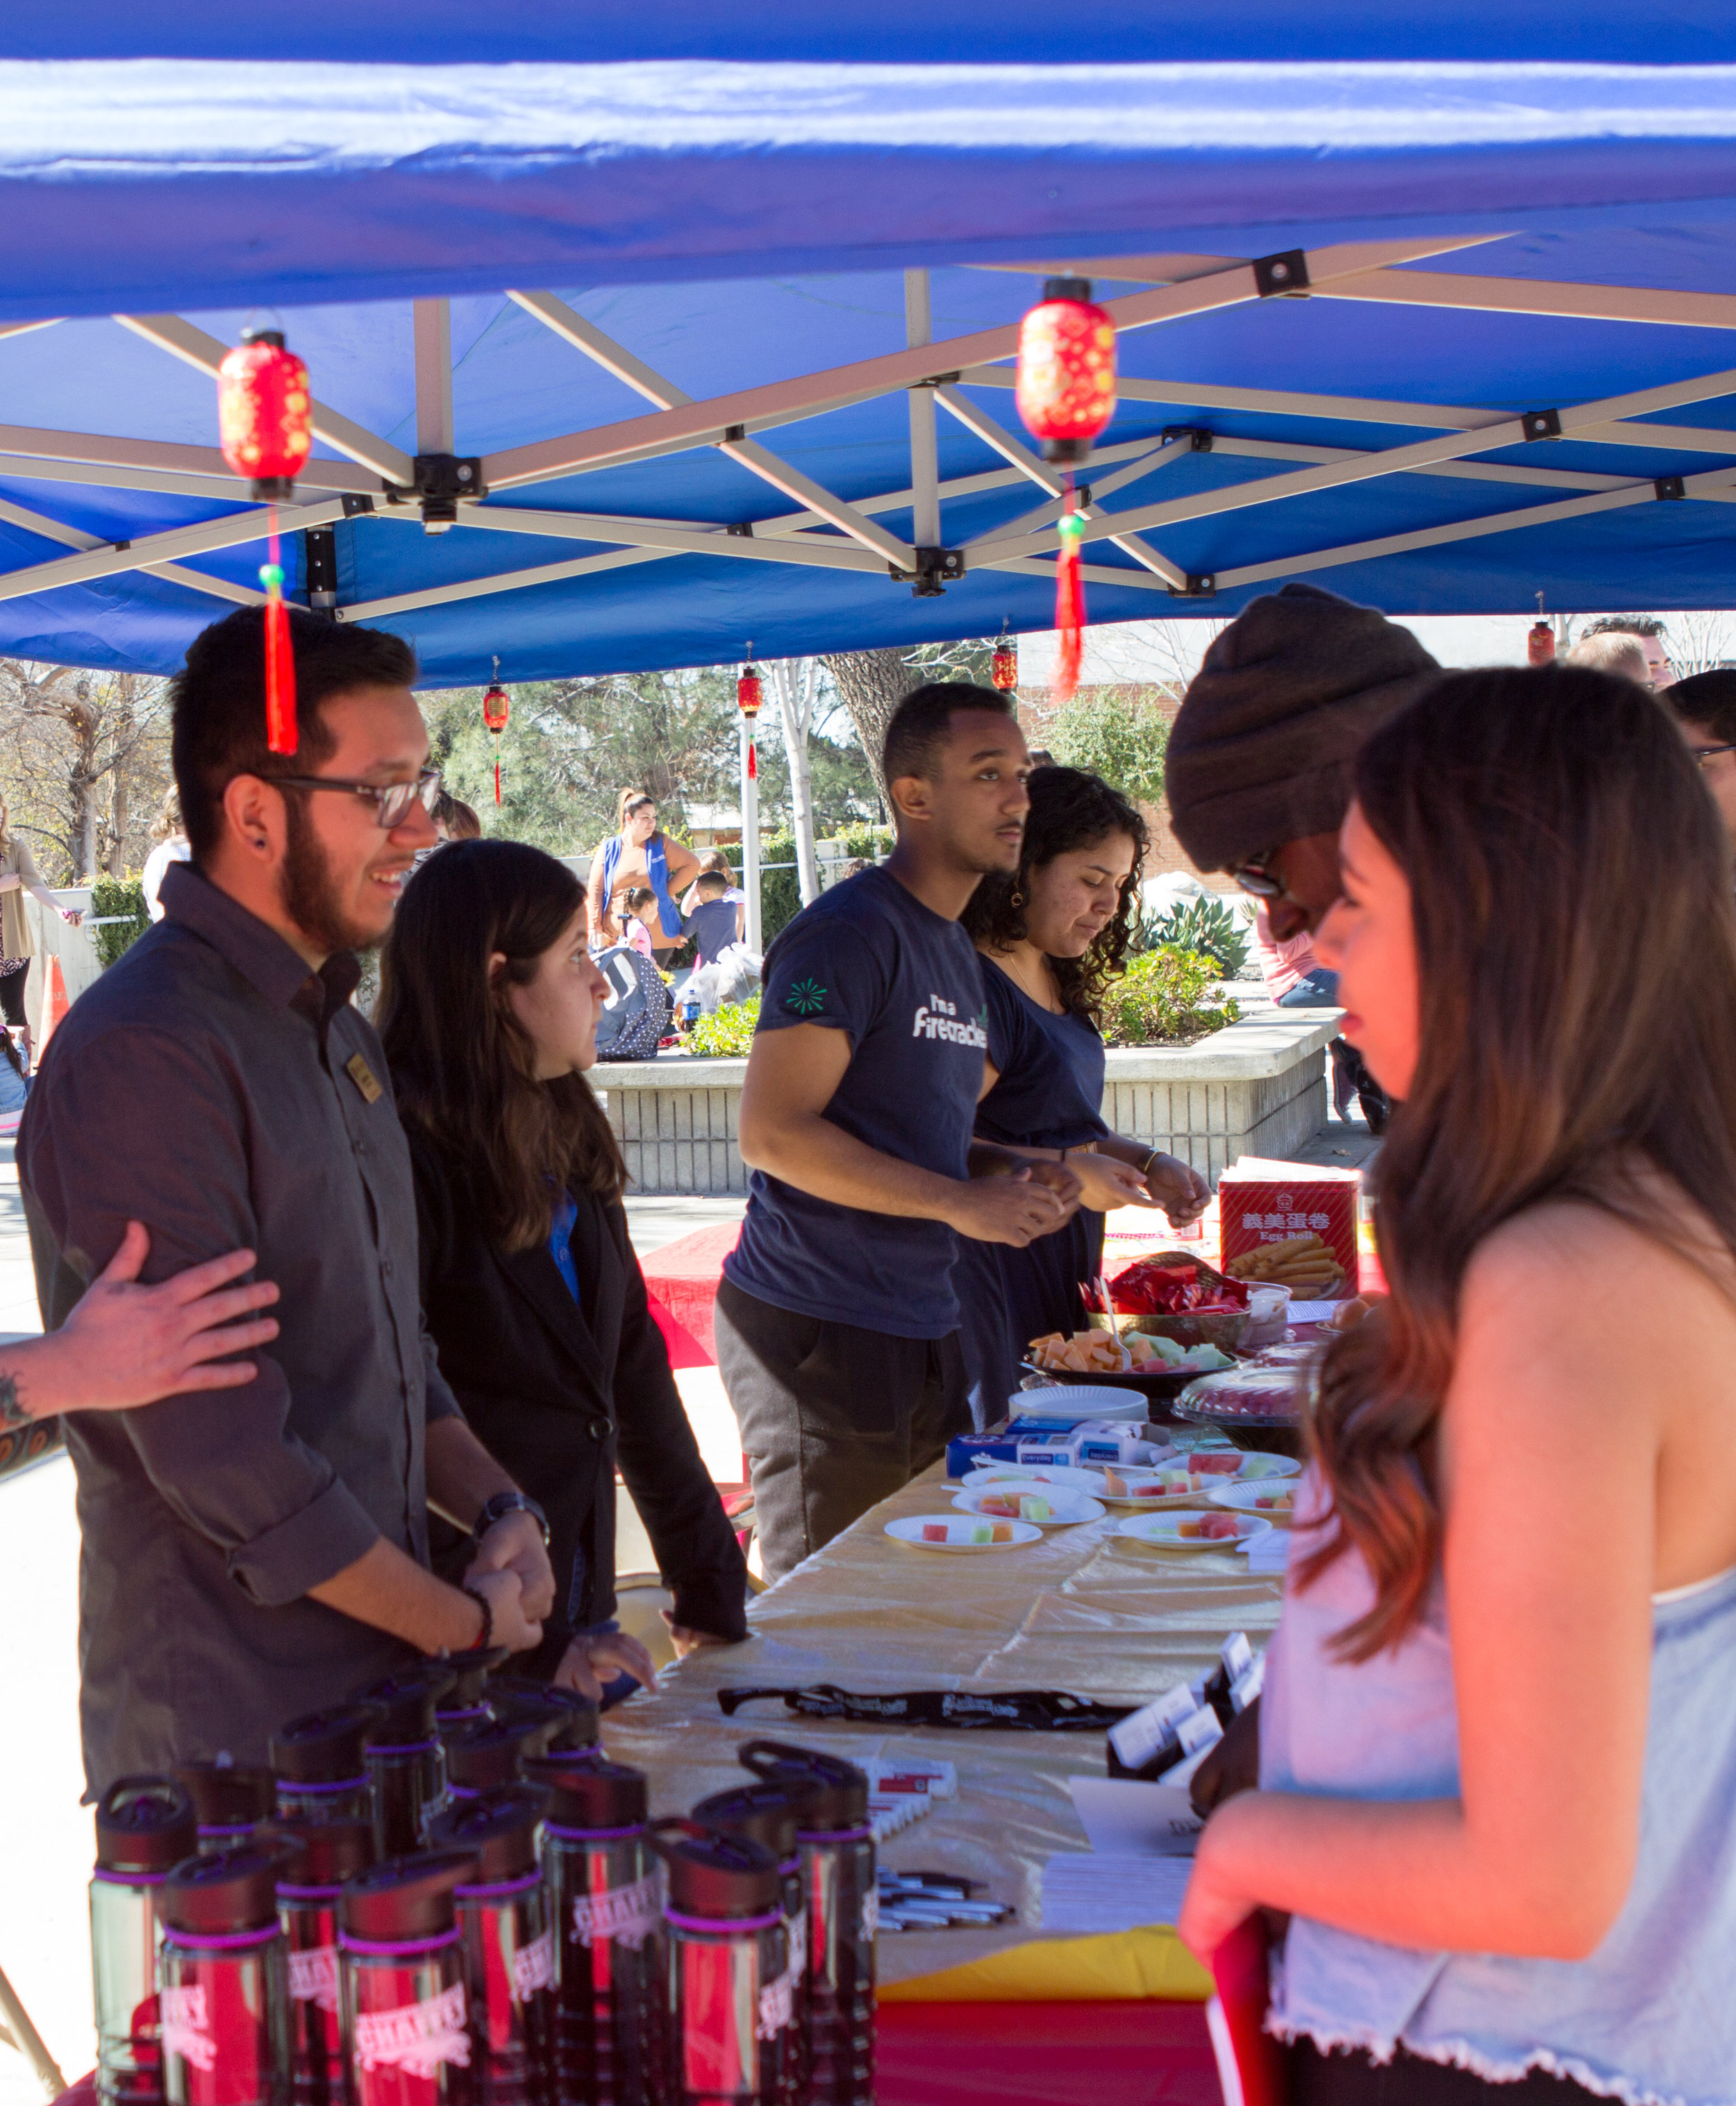 Far left: Jonathon Raya, political science major and ASCC council member talks to students about student government during the Club Rush event on   Wednesday, Feb. 1, 2017. Photo by Christopher Santee.